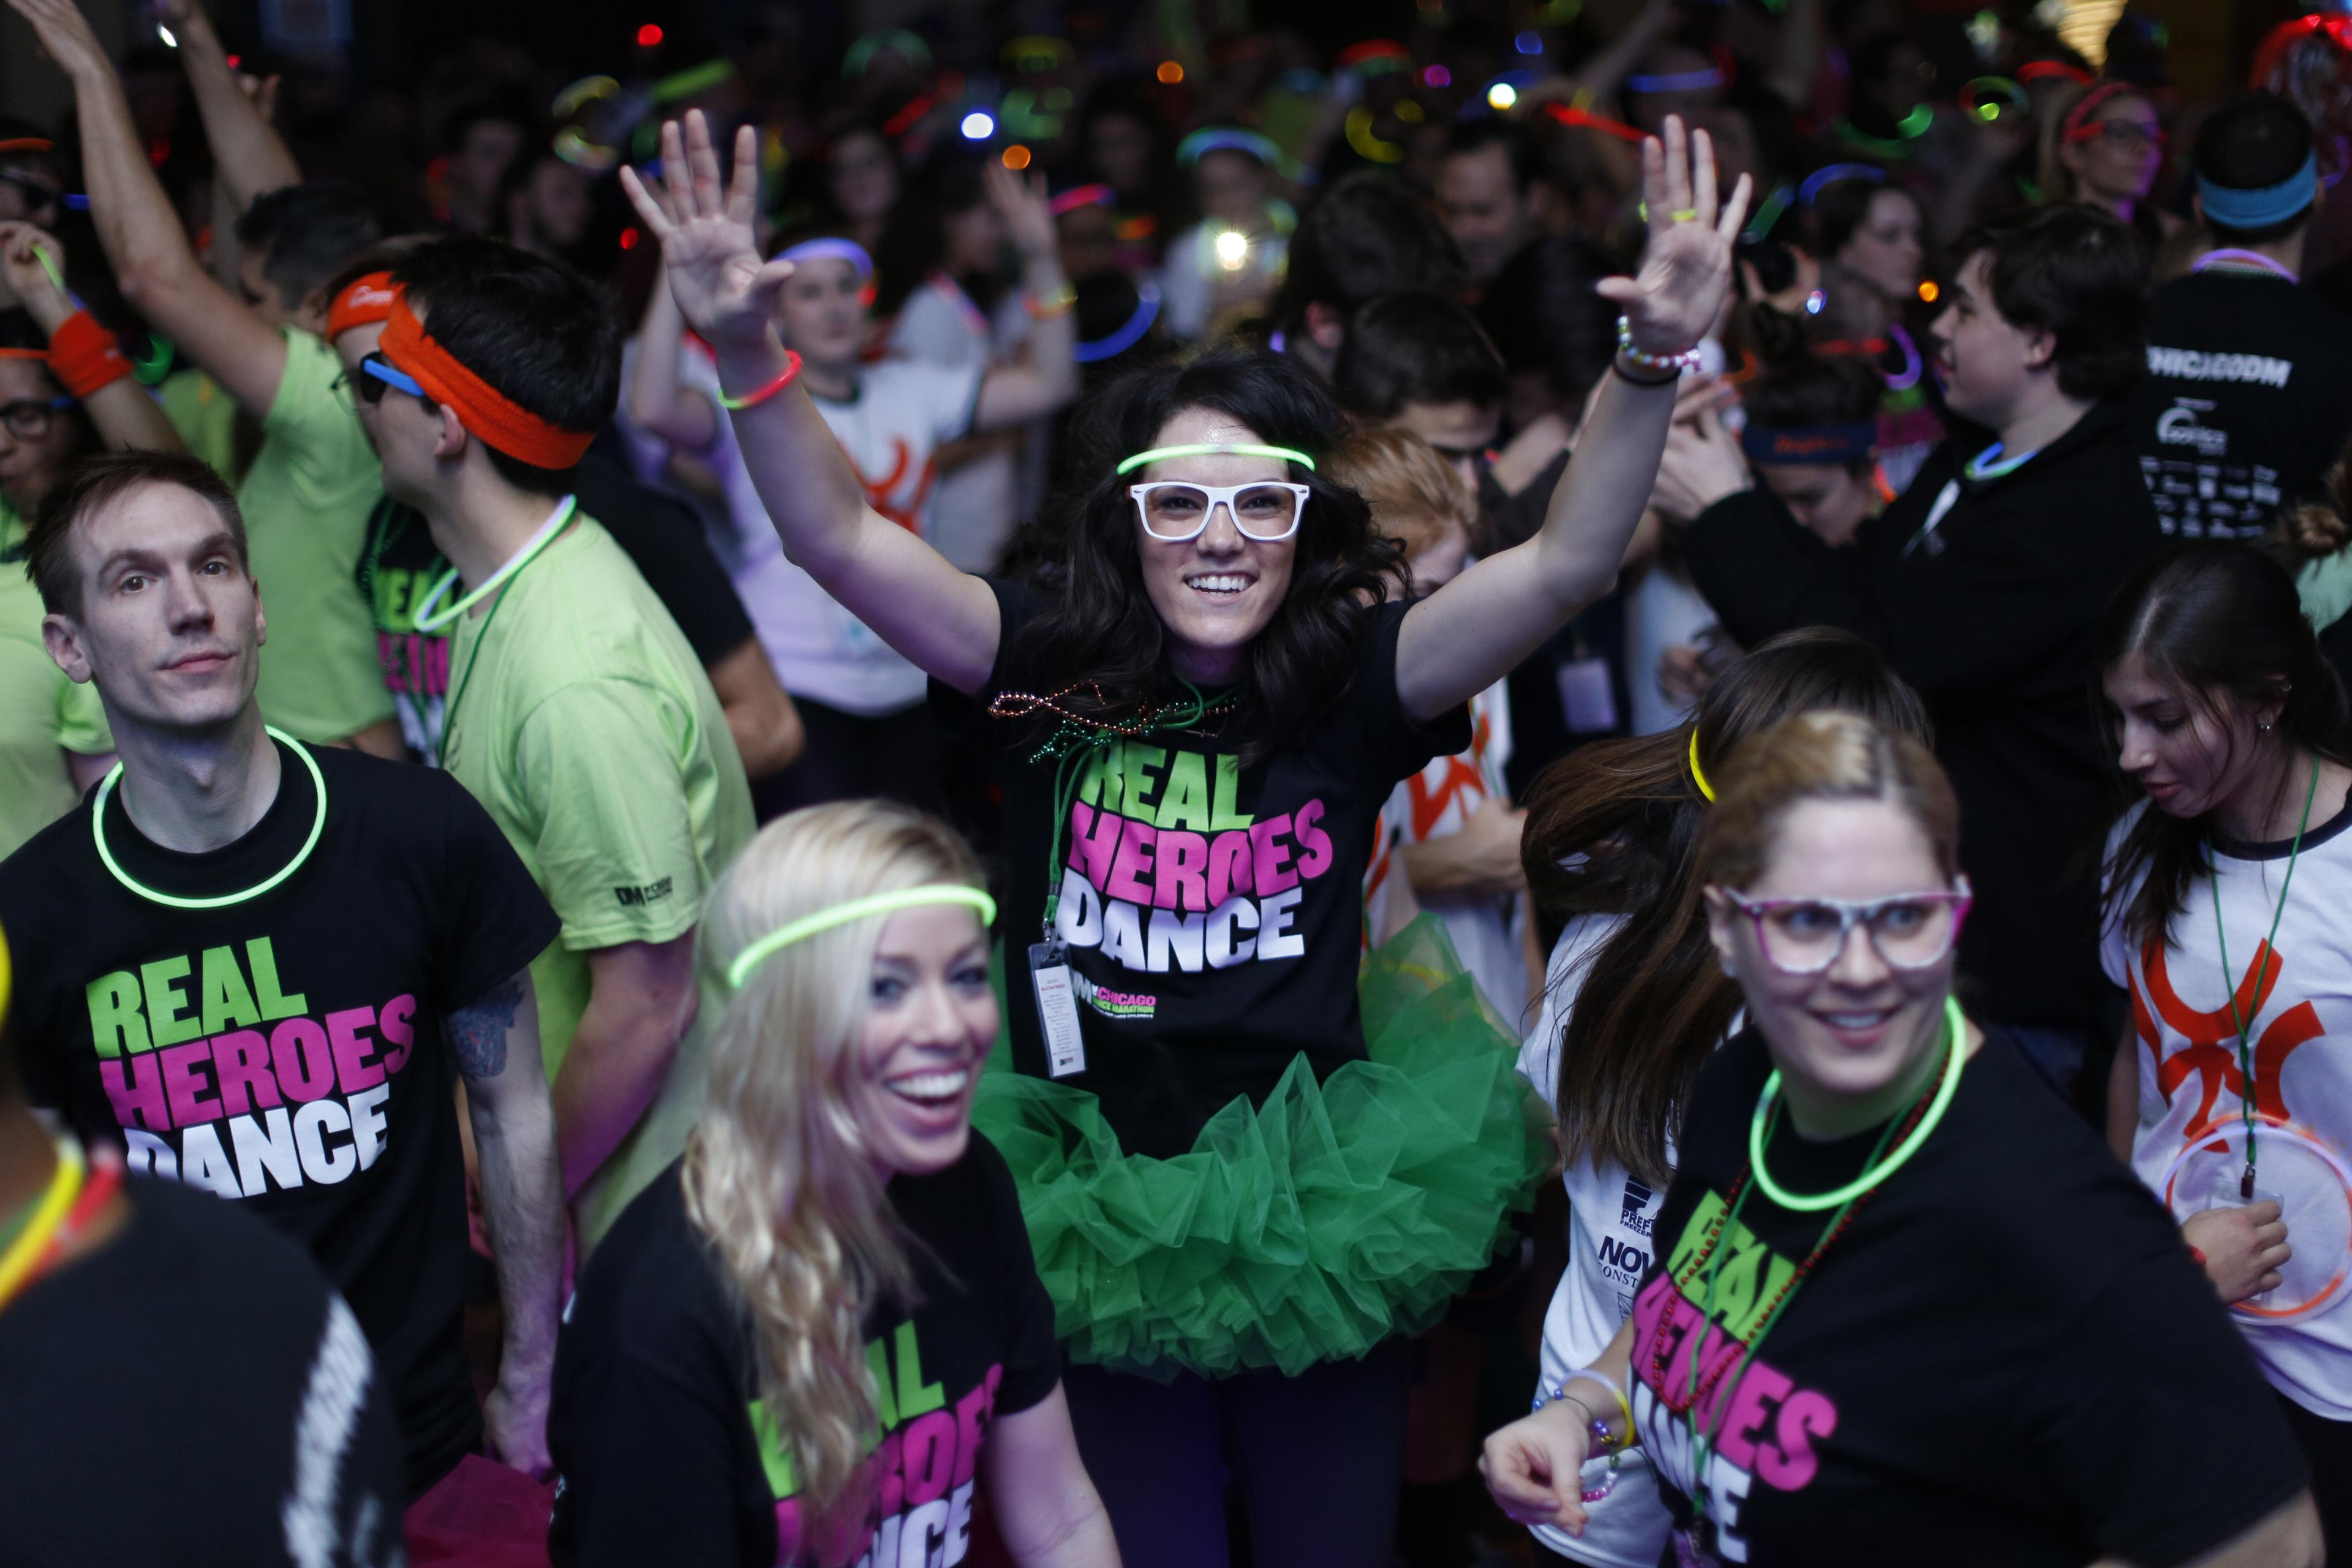 The Chicago Dance Marathon has raised more than $2 million for patients of the Ann & Robert H. Lurie Children's Hospital of Chicago. (Courtesy of Lurie Children's Foundation)